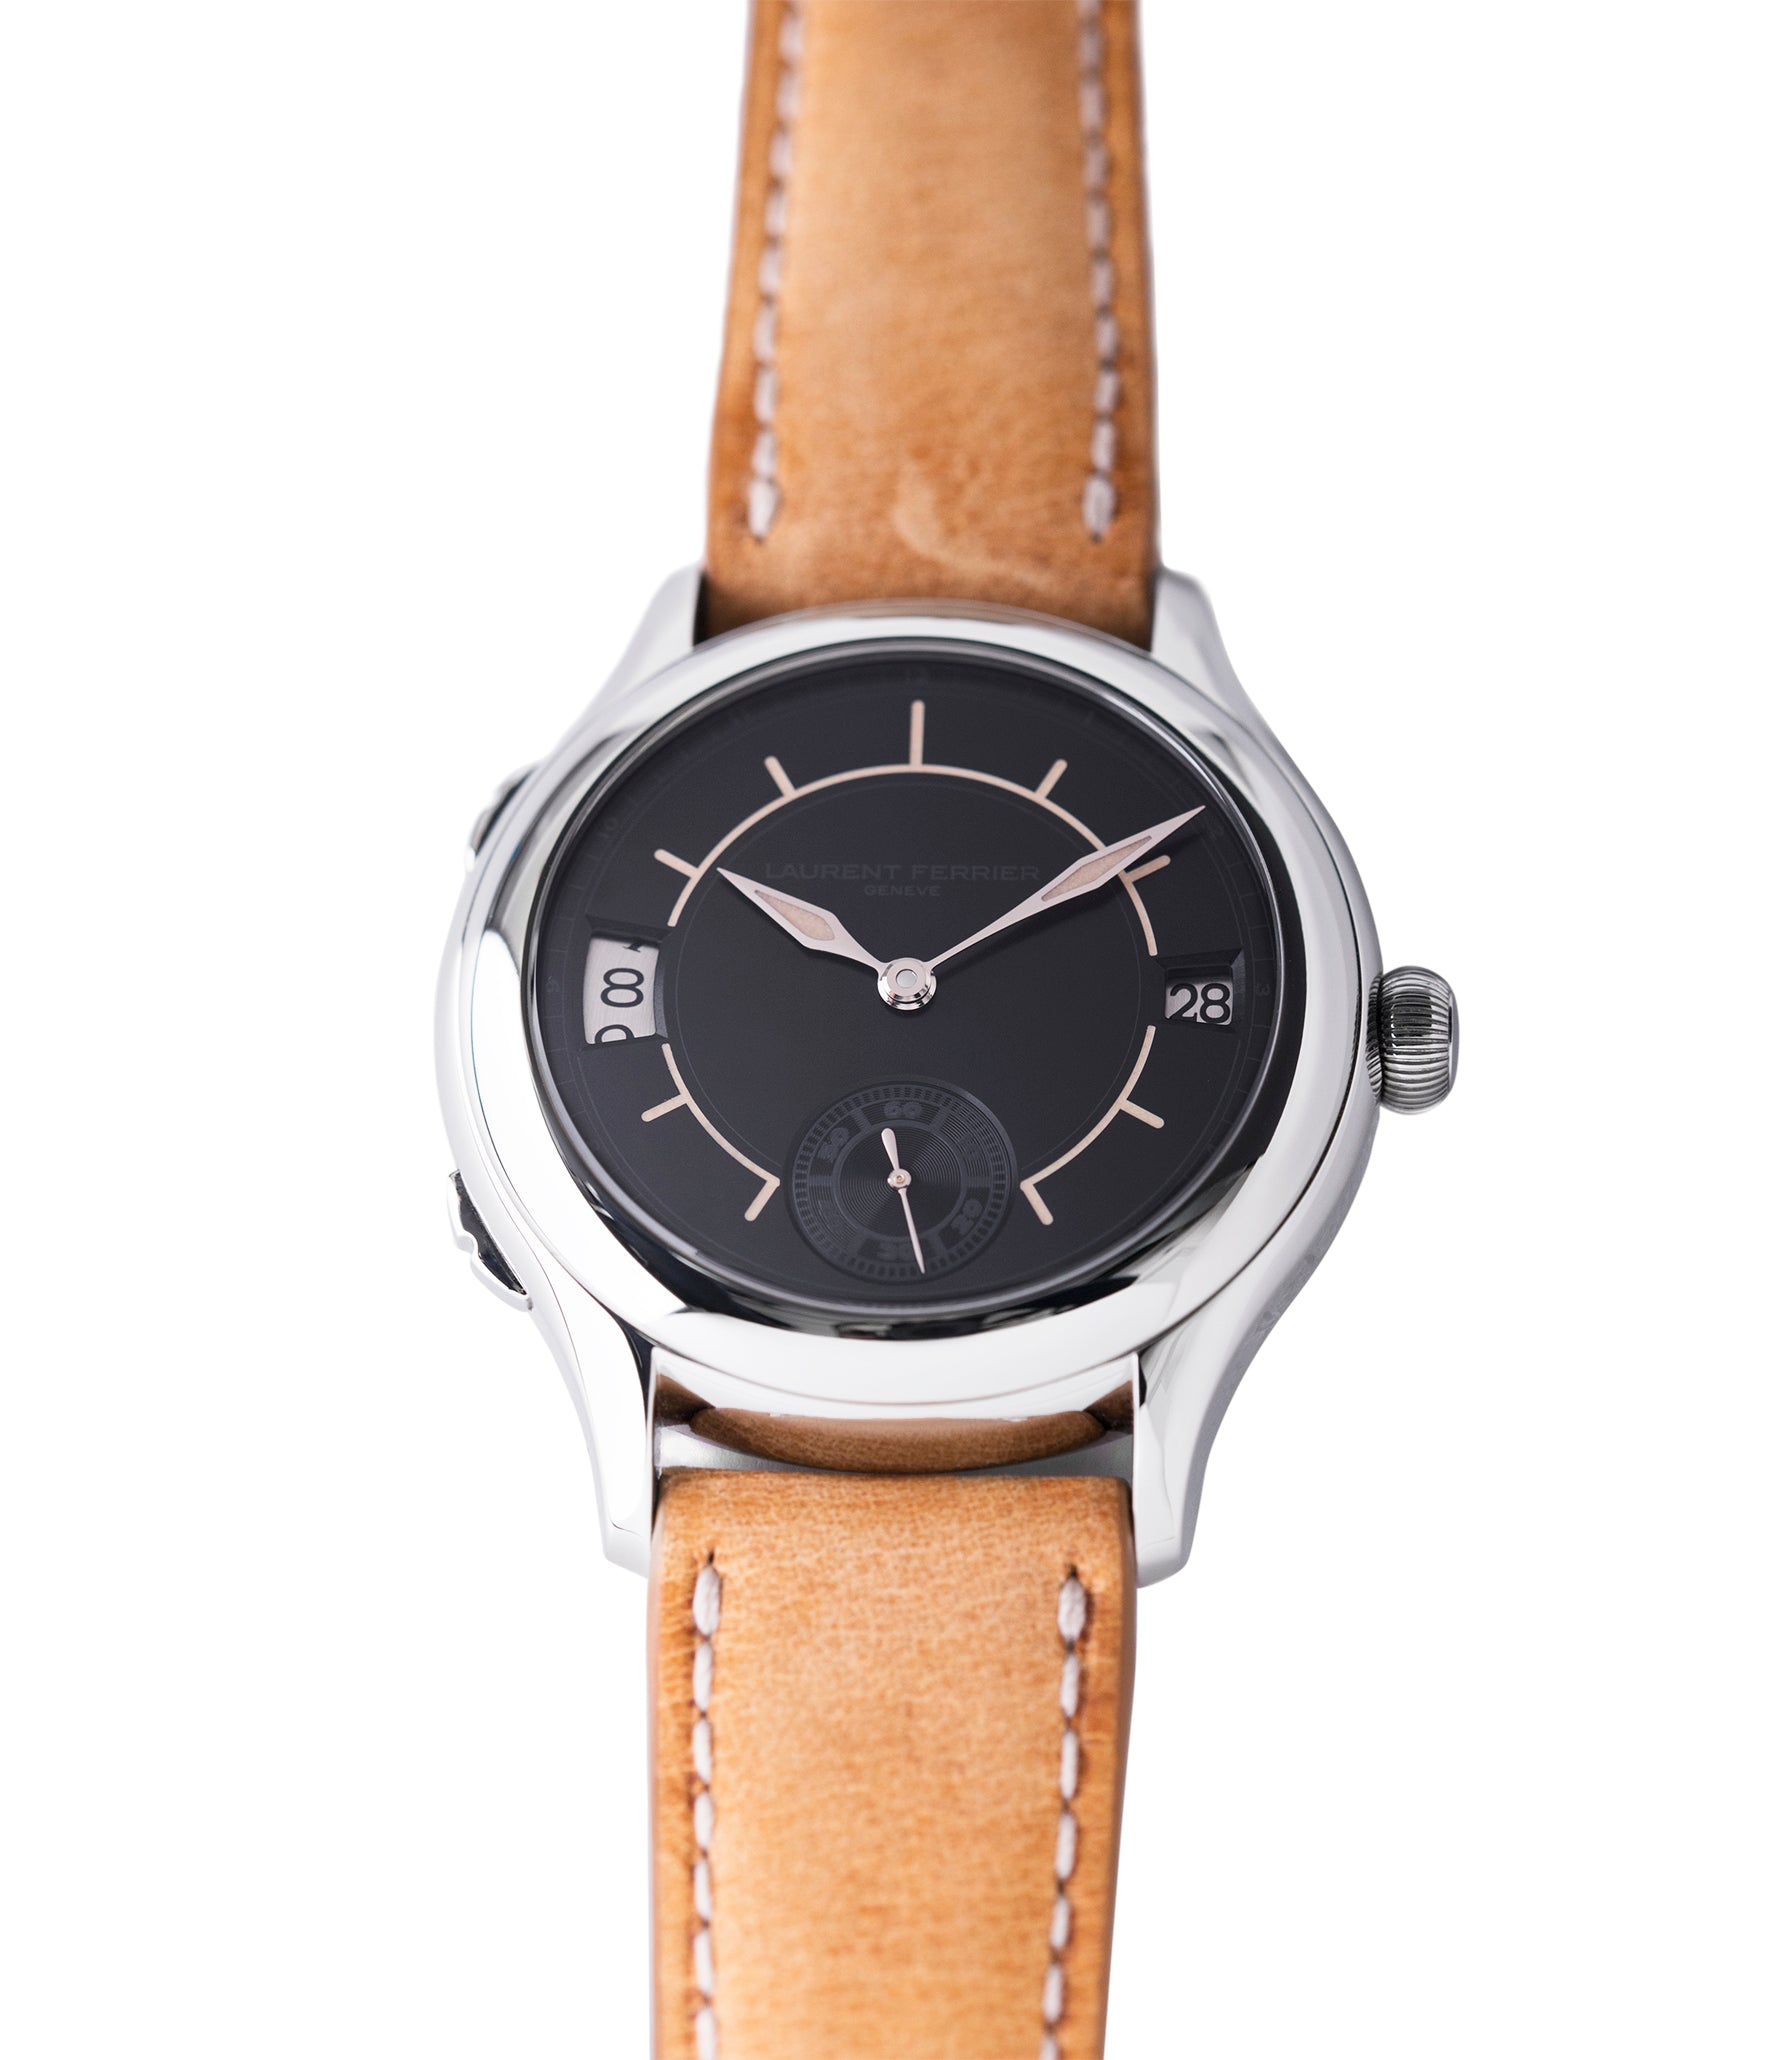 preowned Laurent Ferrier Galet Traveller Boreal steel dual-timezone black dial dress watch for sale online at A Collected Man London approved seller of pre-owned Laurent Ferrier independent watchmakers